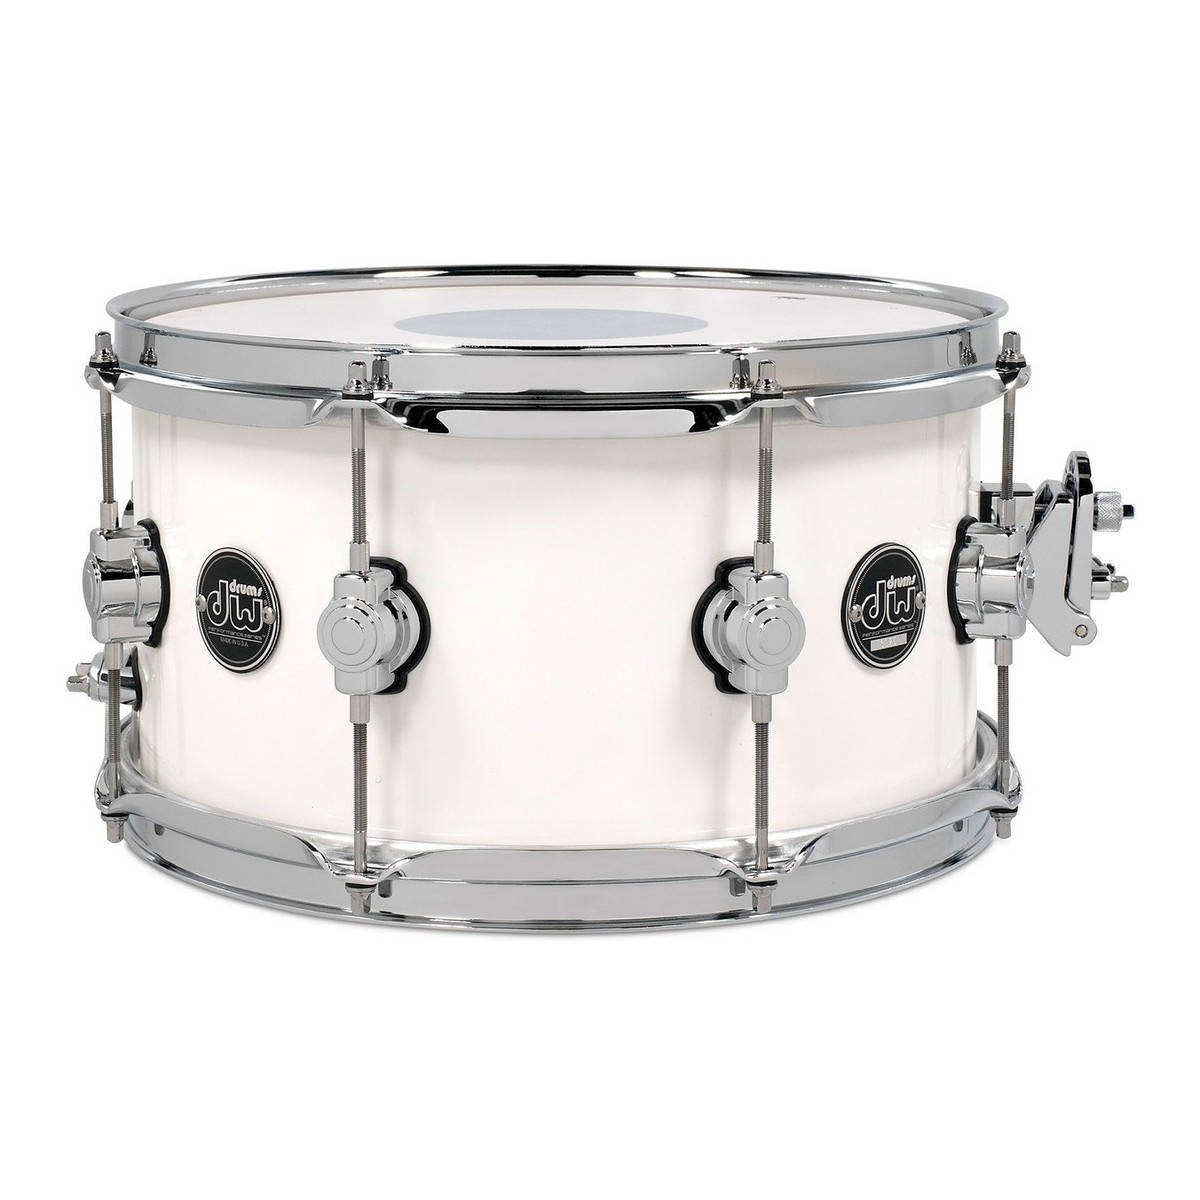 dw drums performance series 13 x 7 snare drum white ice at. Black Bedroom Furniture Sets. Home Design Ideas